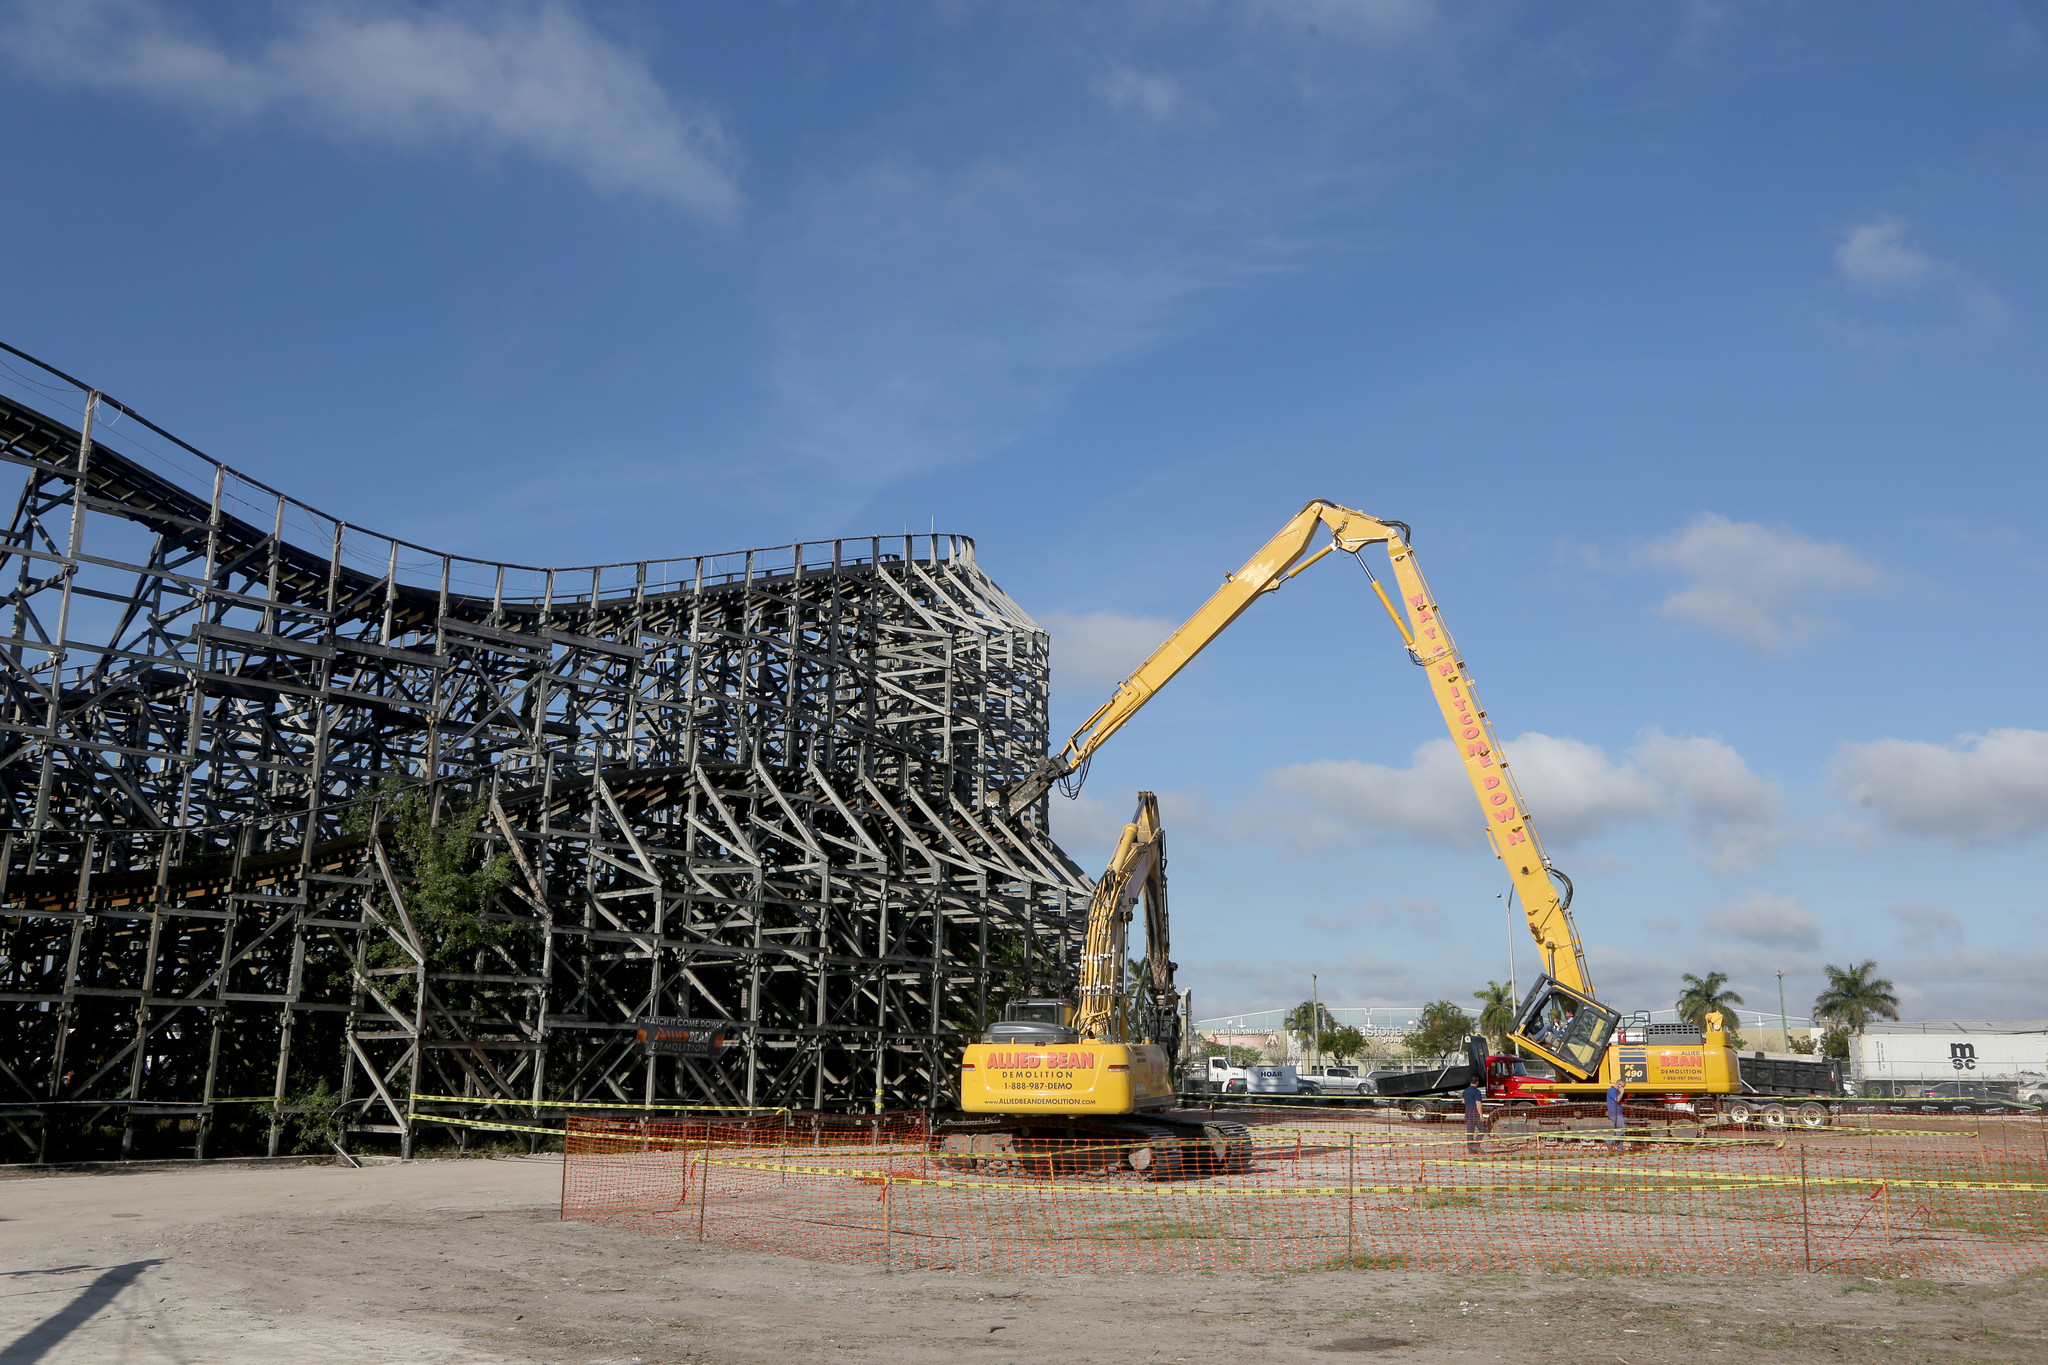 Demolition Begins For Hurricane Roller Coaster In Dania